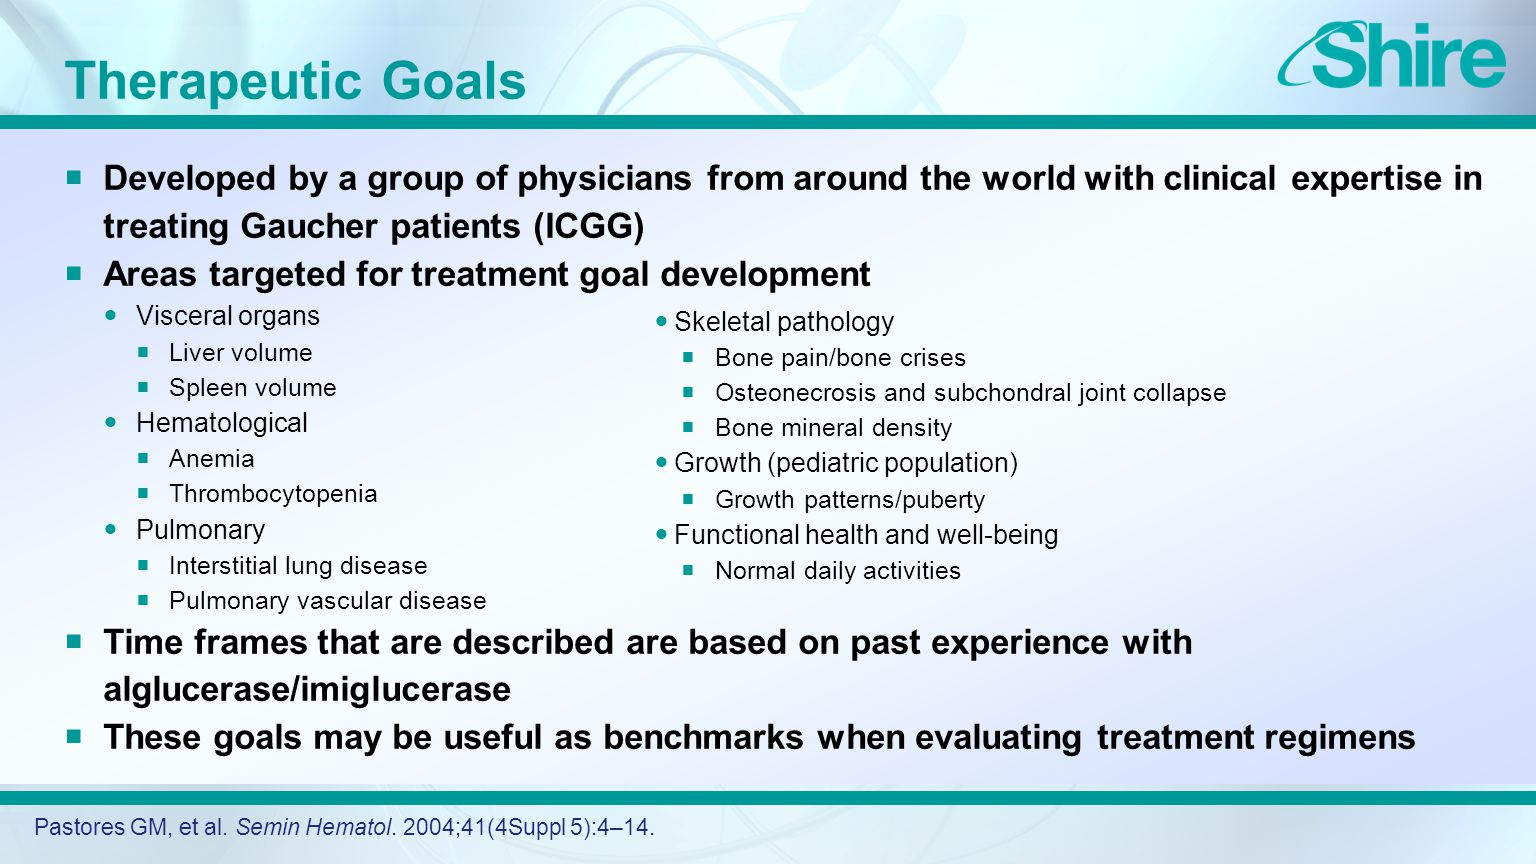 Therapeutic Goals  Developed by a group of physicians from around the world with clinical expertise in treating Gaucher patients (ICGG)  Areas targeted for treatment goal development Visceral organs  Liver volume  Spleen volume Hematological  Anemia  Thrombocytopenia Pulmonary  Interstitial lung disease  Pulmonary vascular disease  Time frames that are described are based on past experience with alglucerase/imiglucerase  These goals may be useful as benchmarks when evaluating treatment regimens Pastores GM, et al.